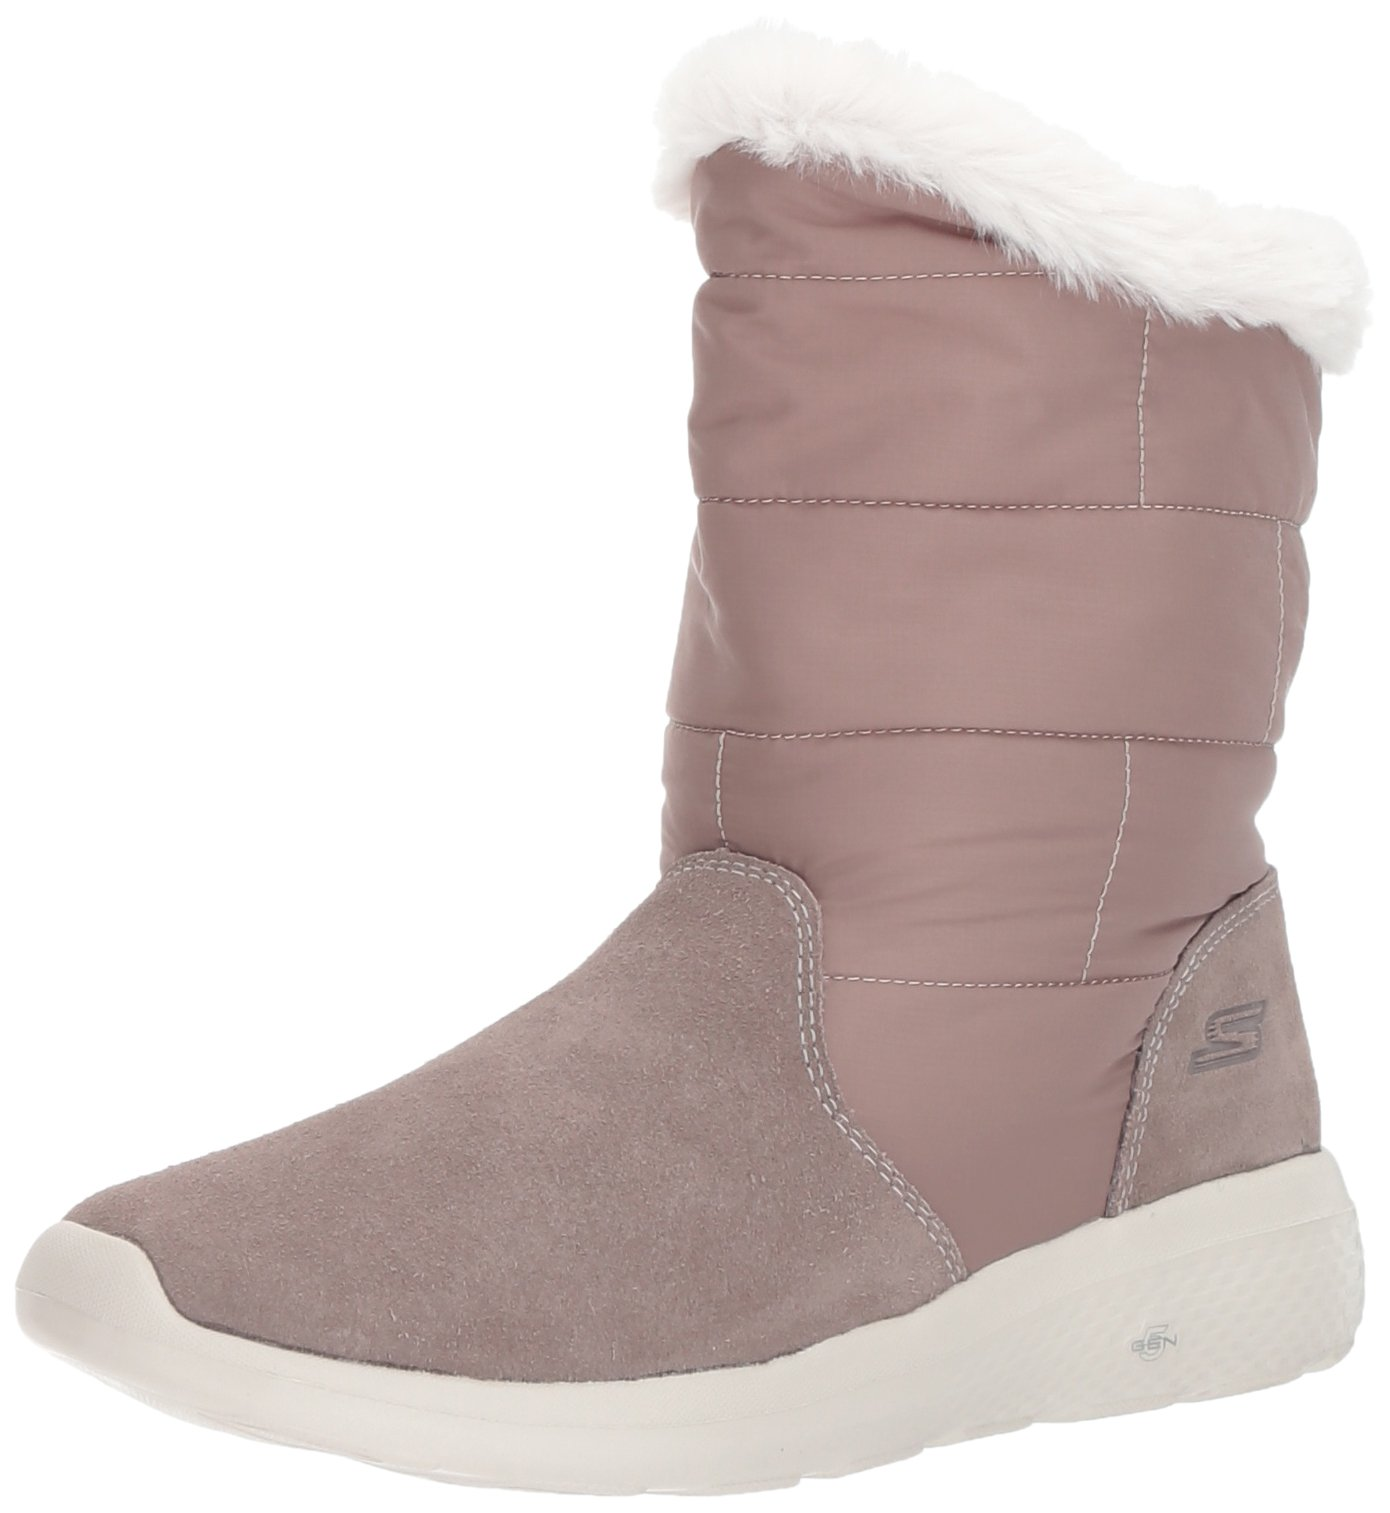 Skechers Performance Women's on-The-Go City 2-Puff Winter Boot,Taupe,7.5 M US